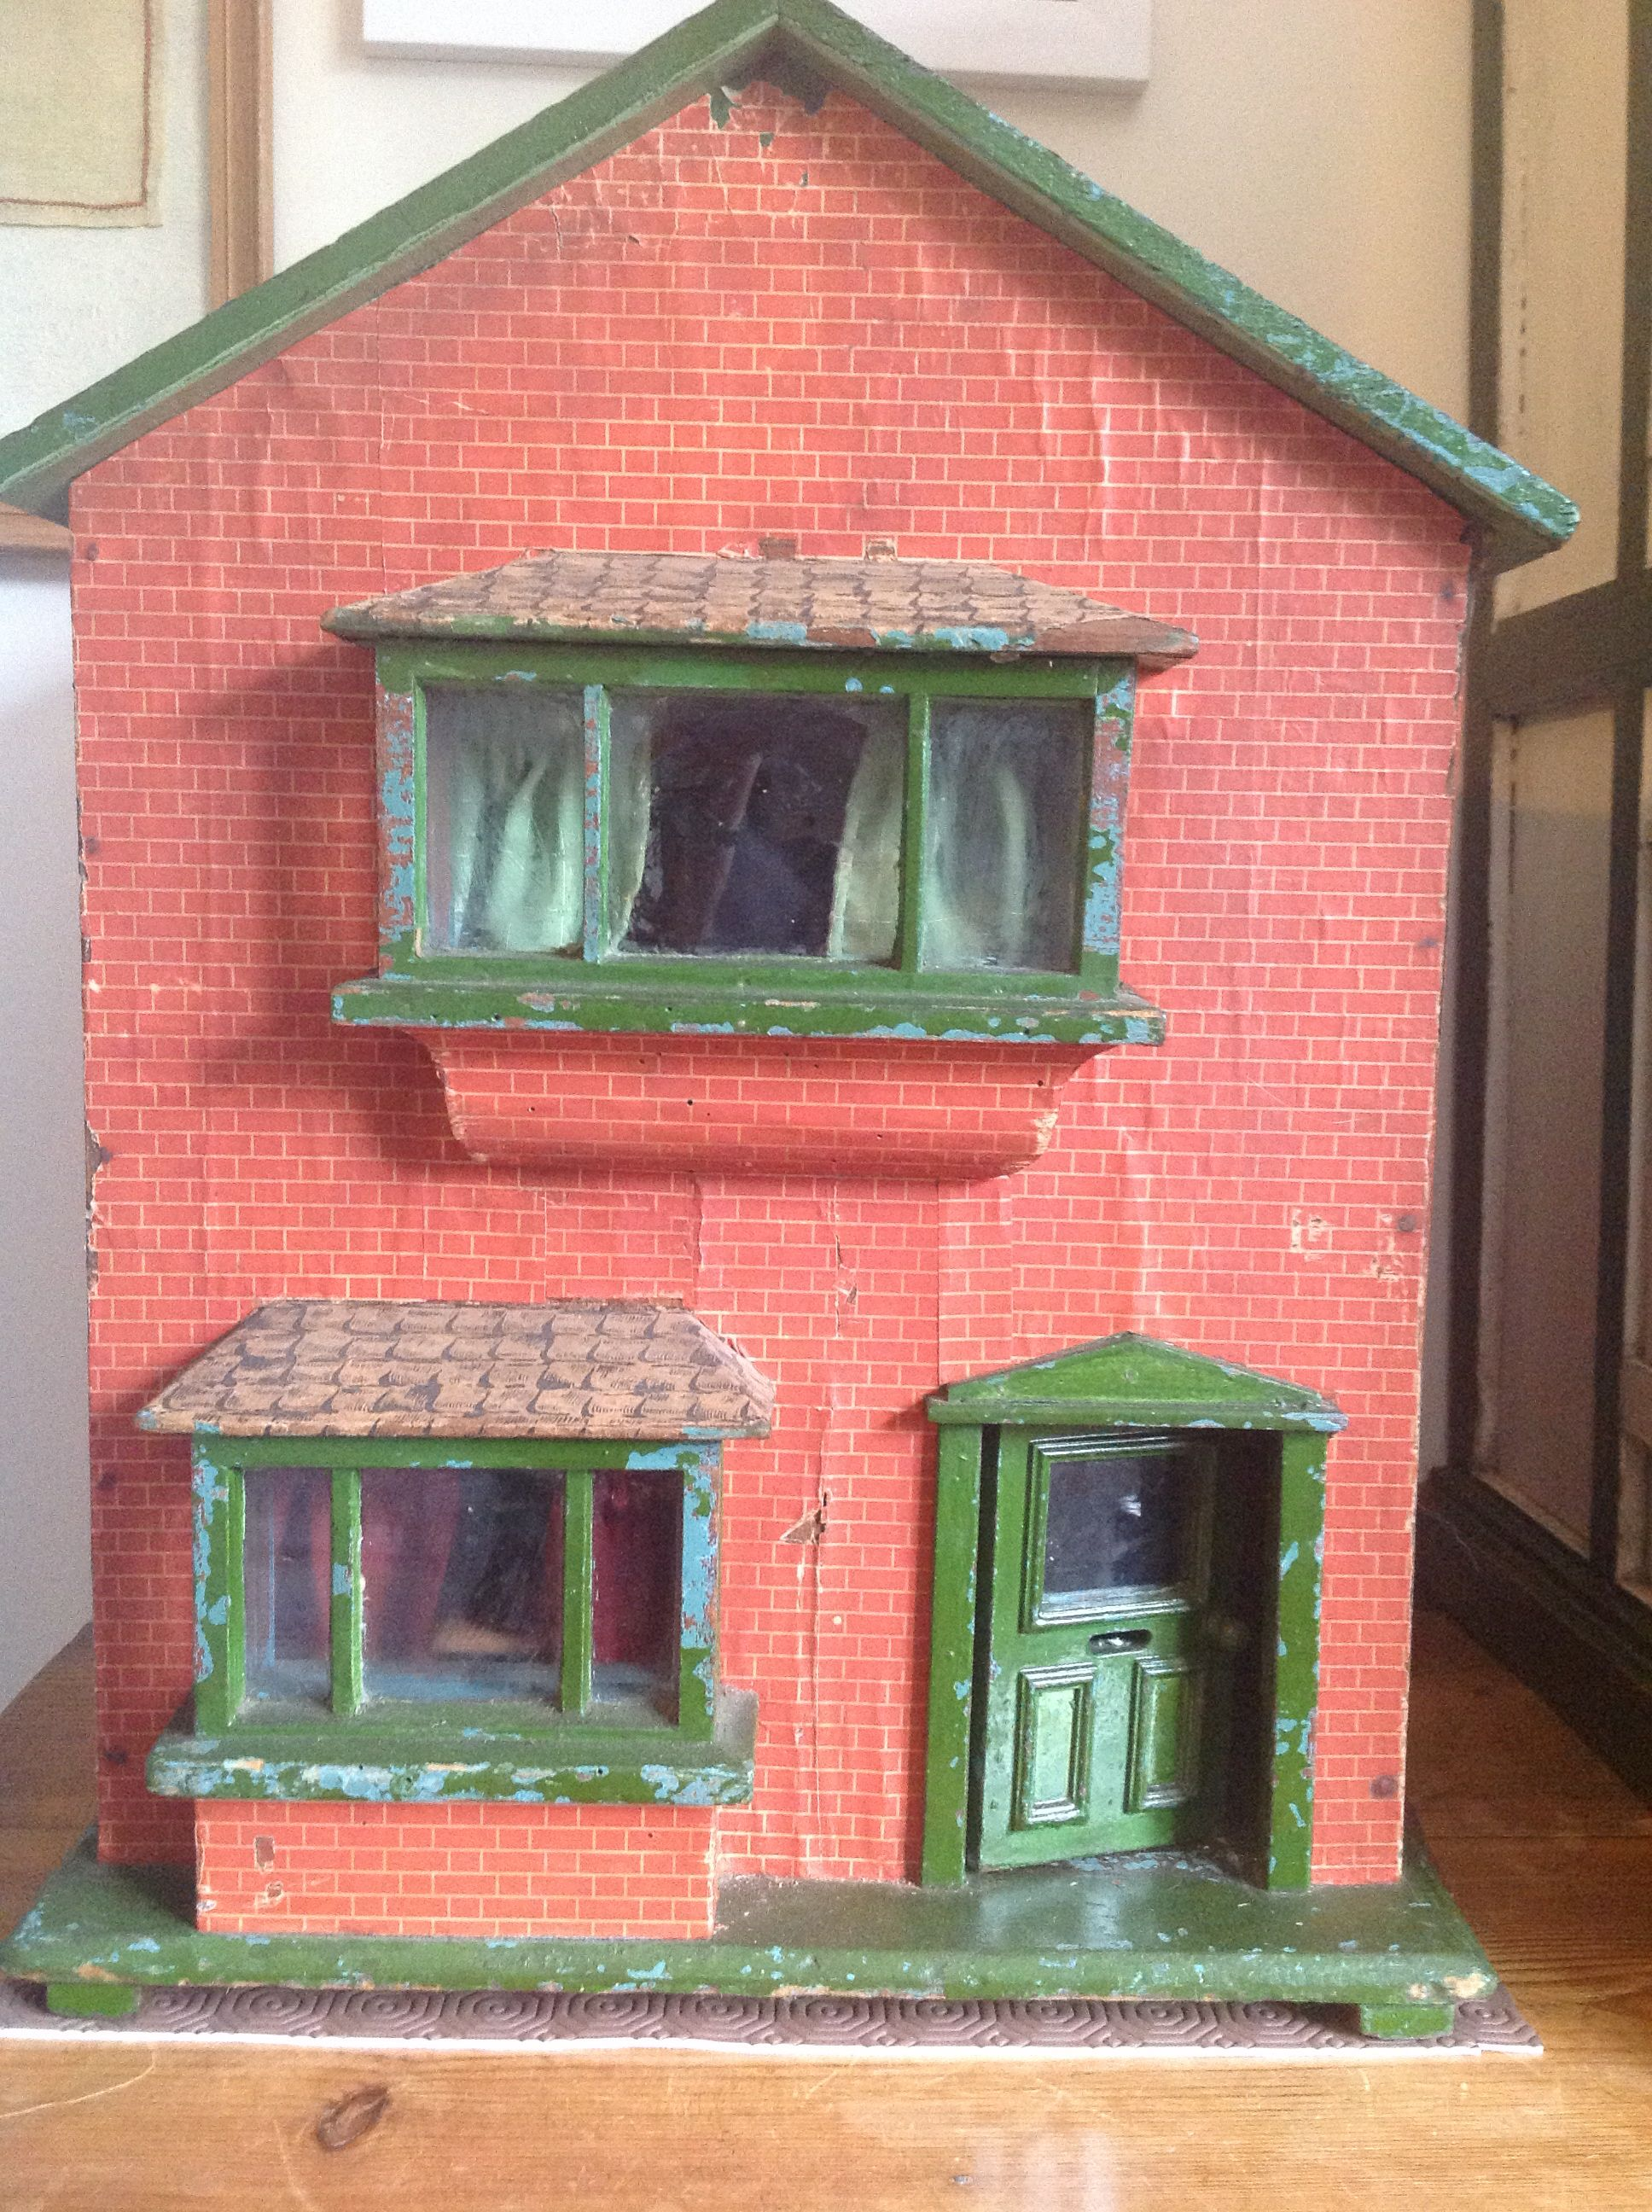 Pin by natg23 on Dollhouses   Pinterest   Doll houses, Dolls and ...